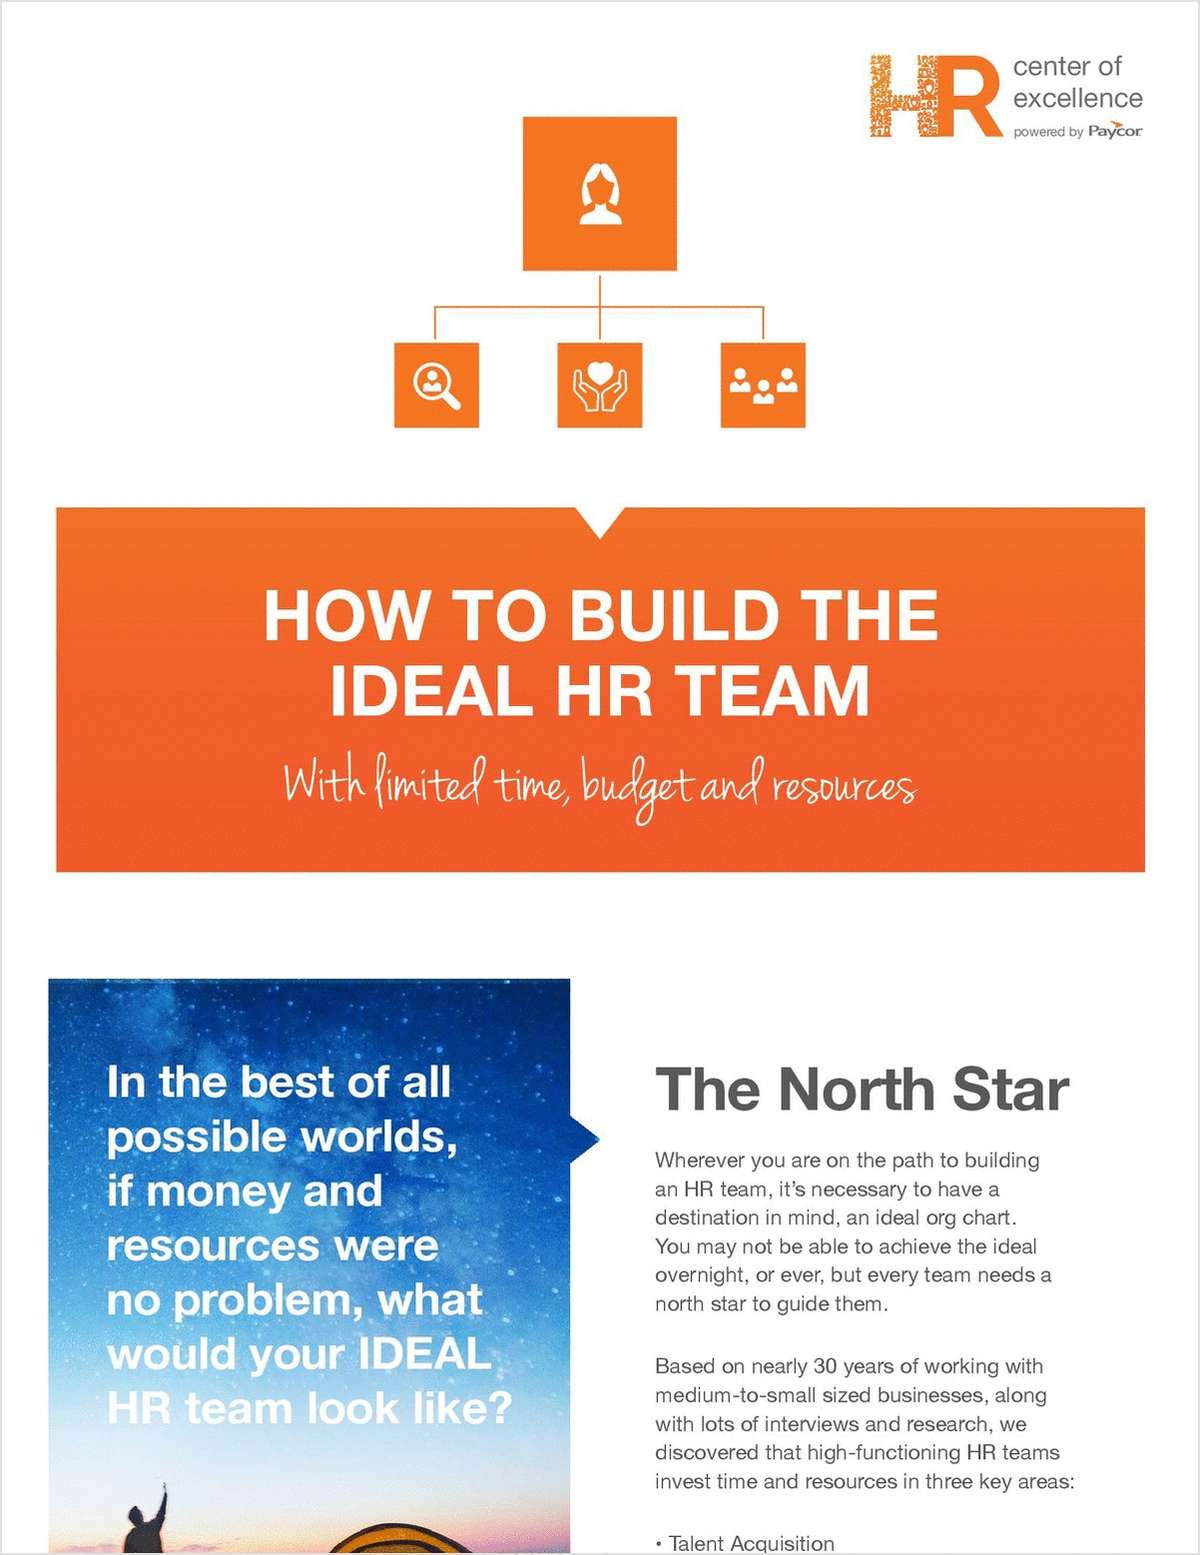 How to Build the Ideal HR Team